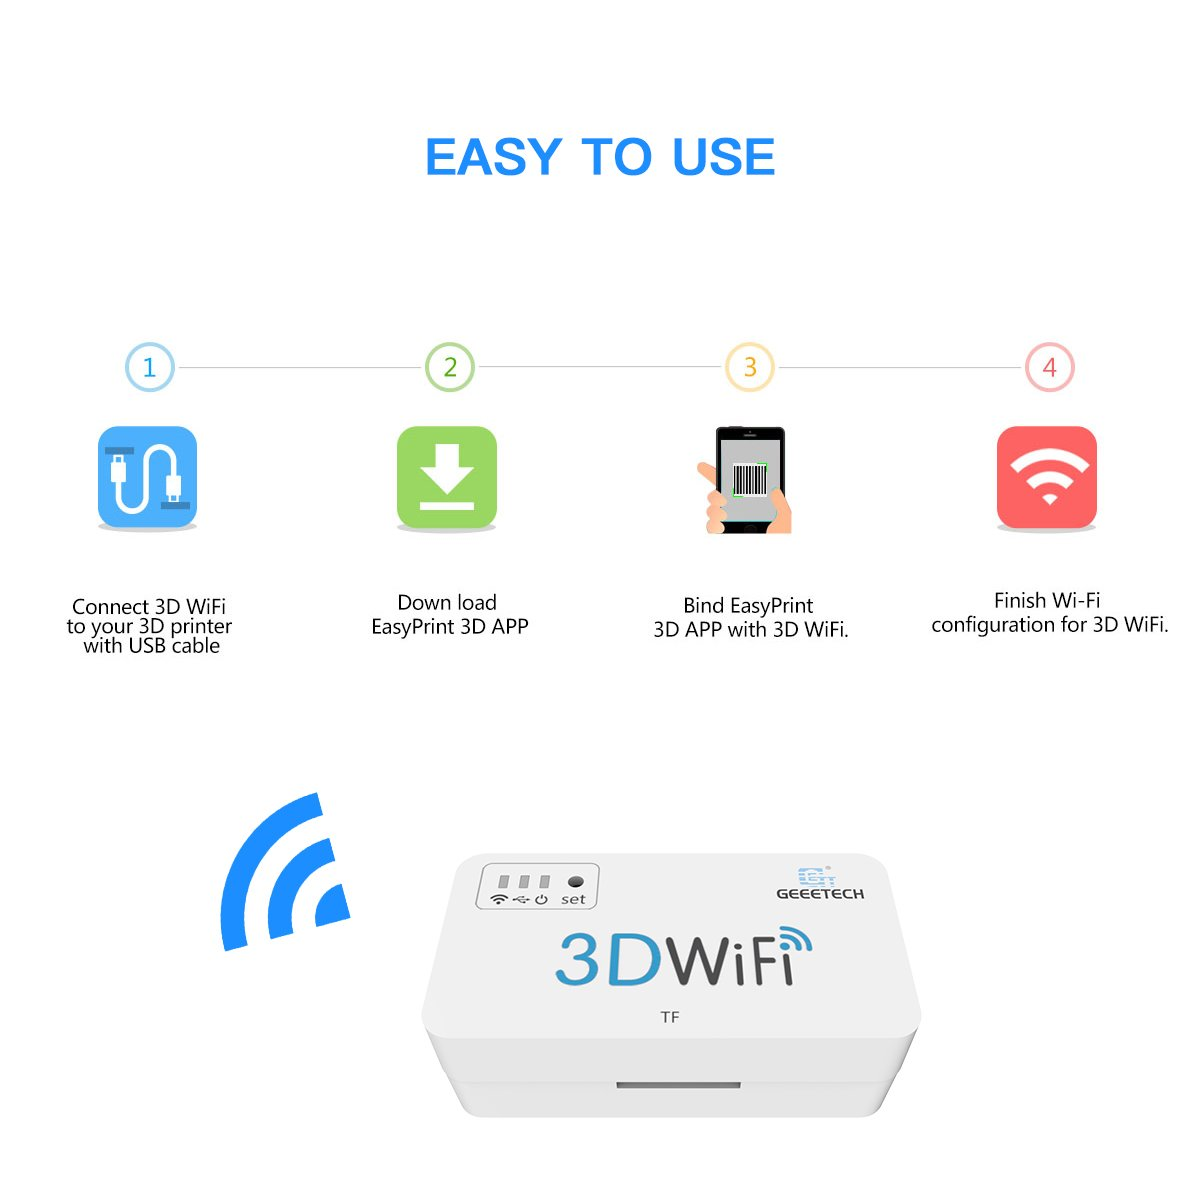 Geeetech 3D WiFi Module for 3D Printer, Easy to Use, Wireless Control 3D  Printer with Easyprint 3D App